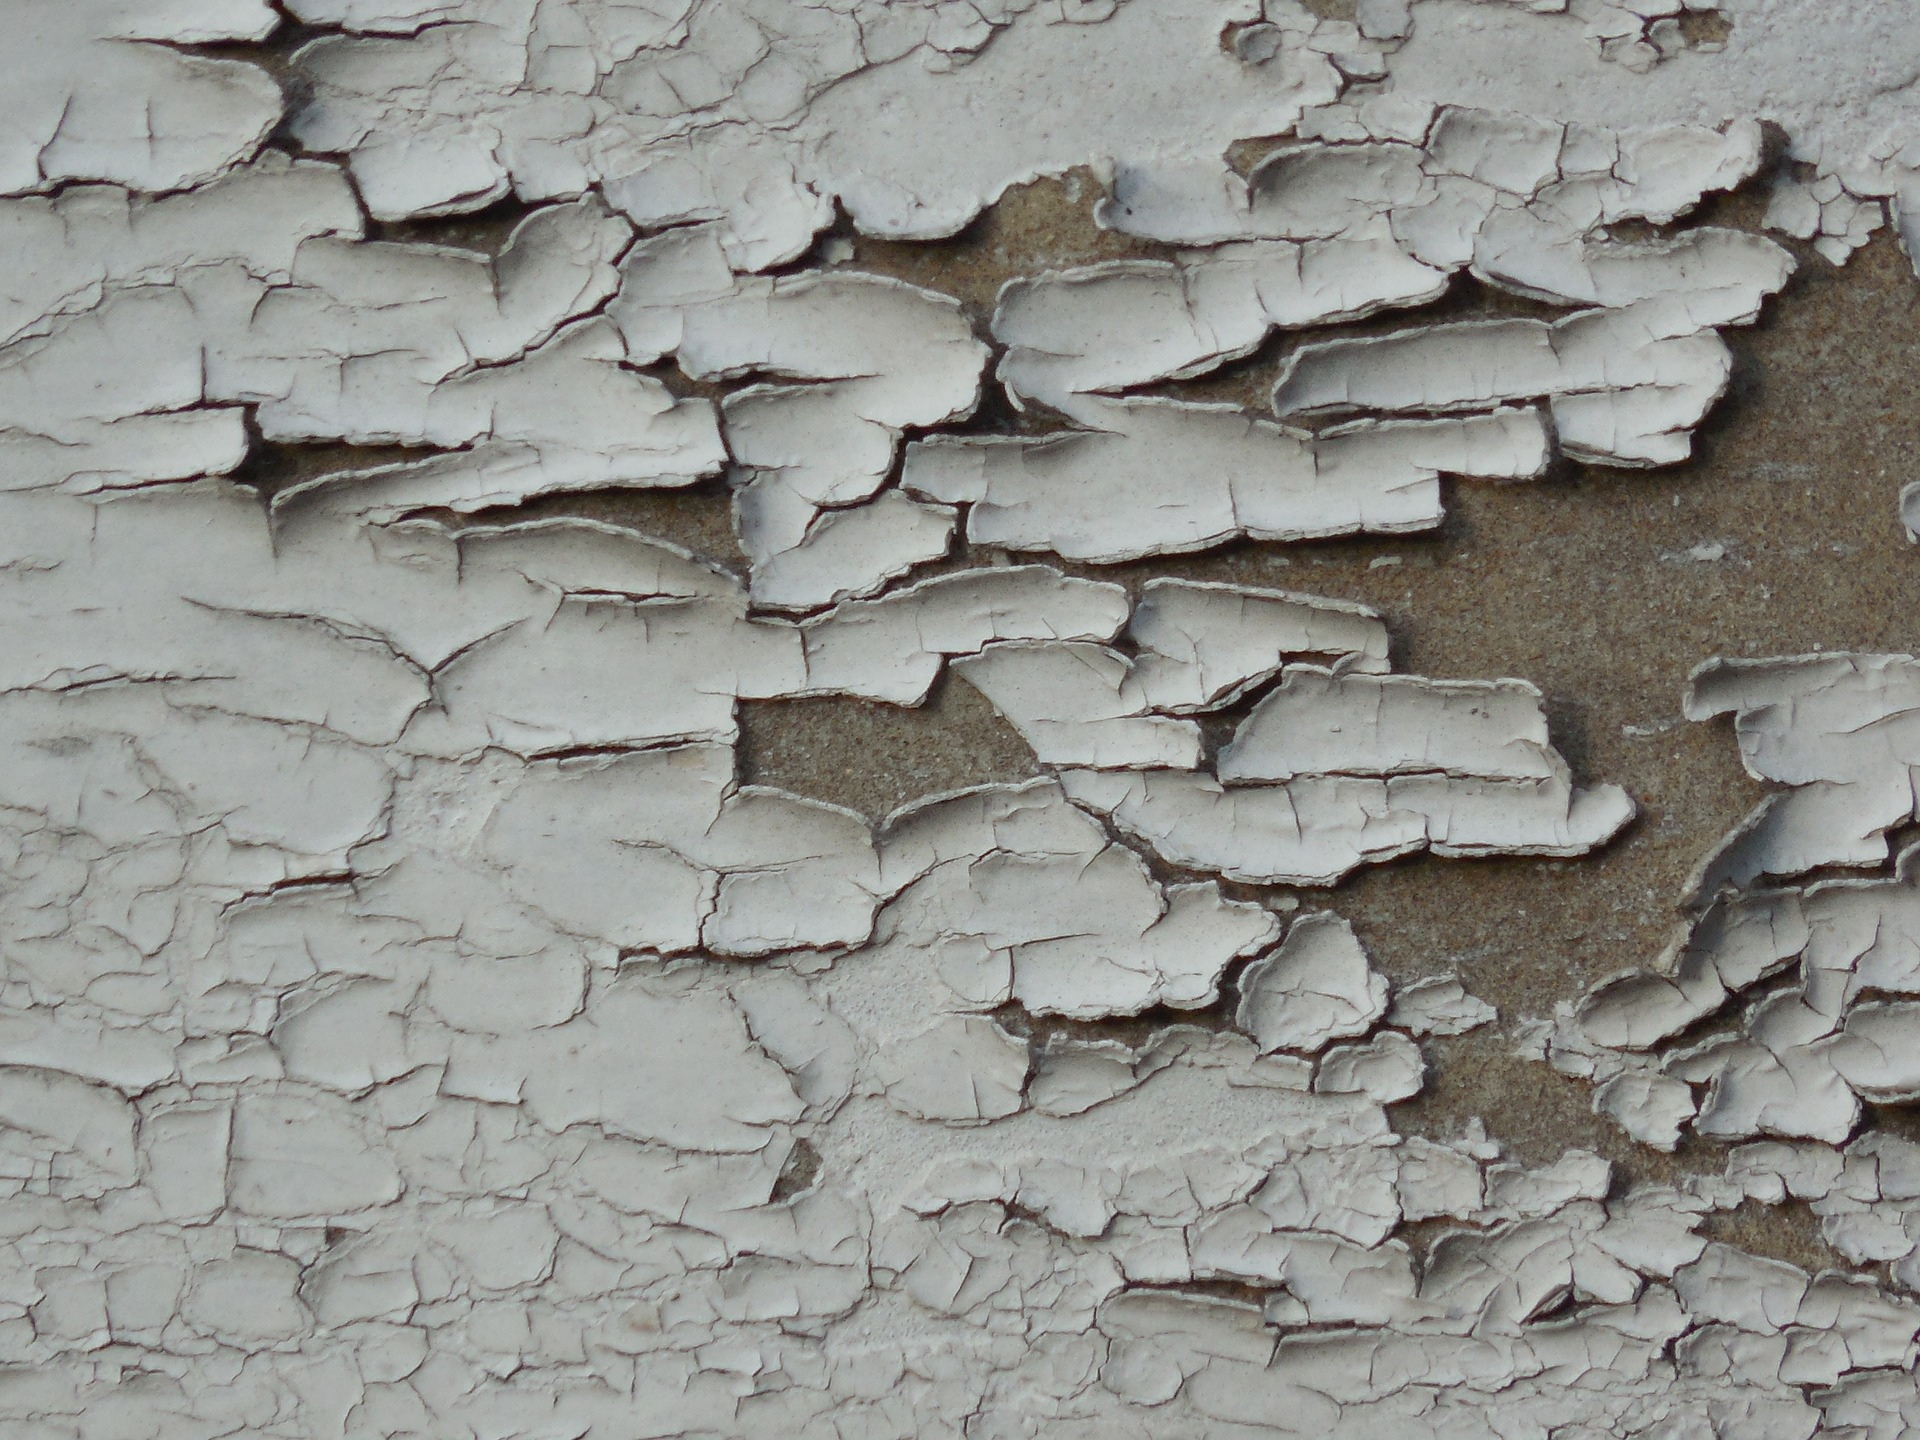 City Sees a Drop in Lead Poisoning Cases